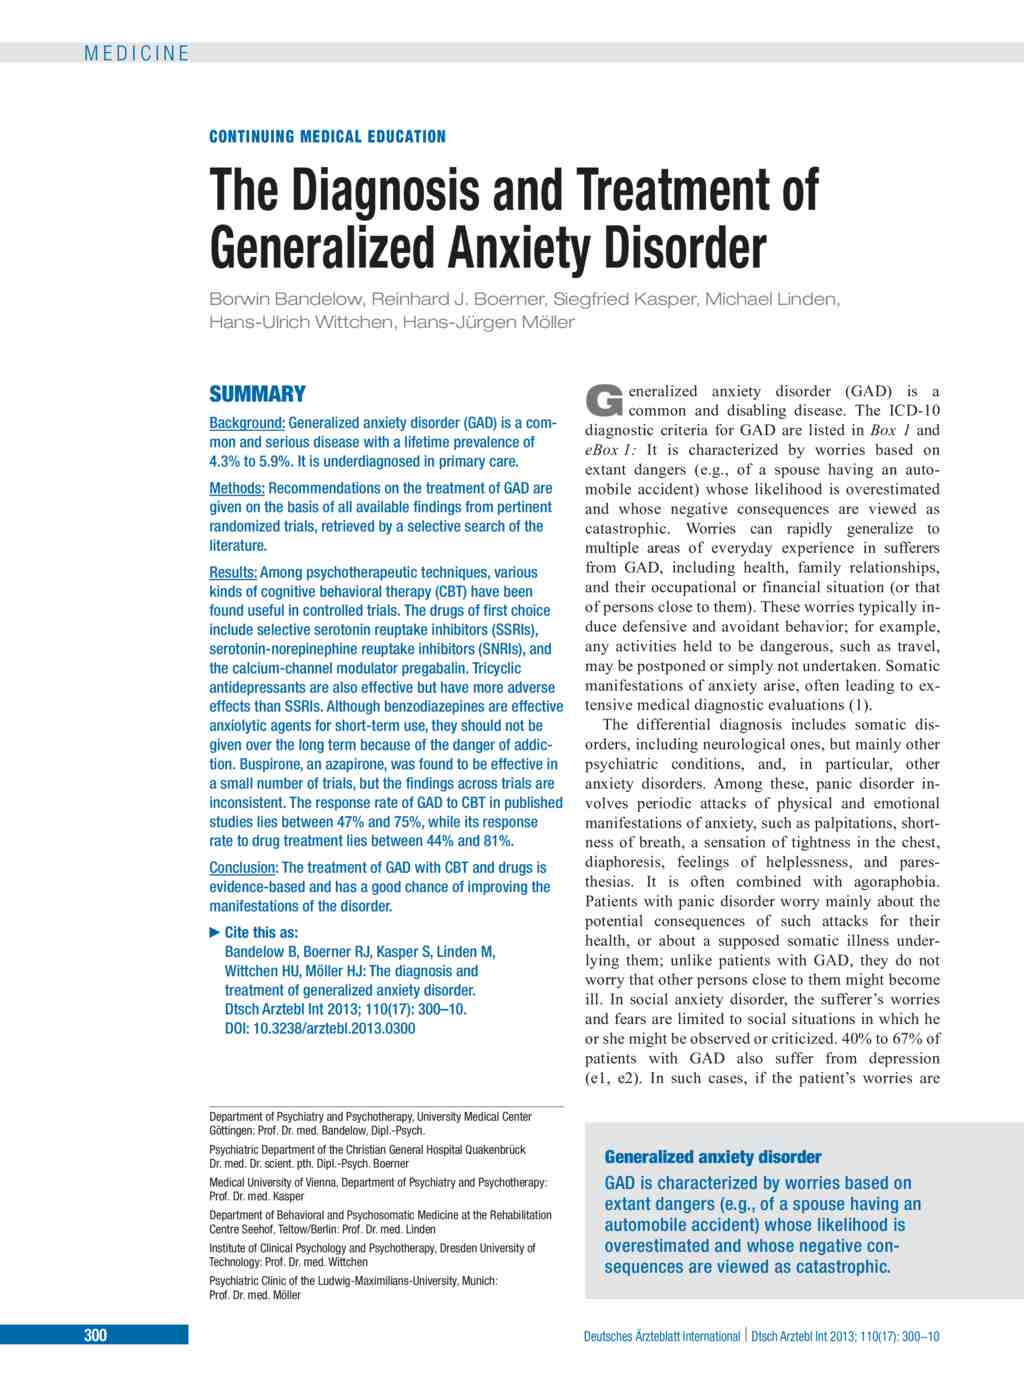 What medications treat generalized anxiety disorder